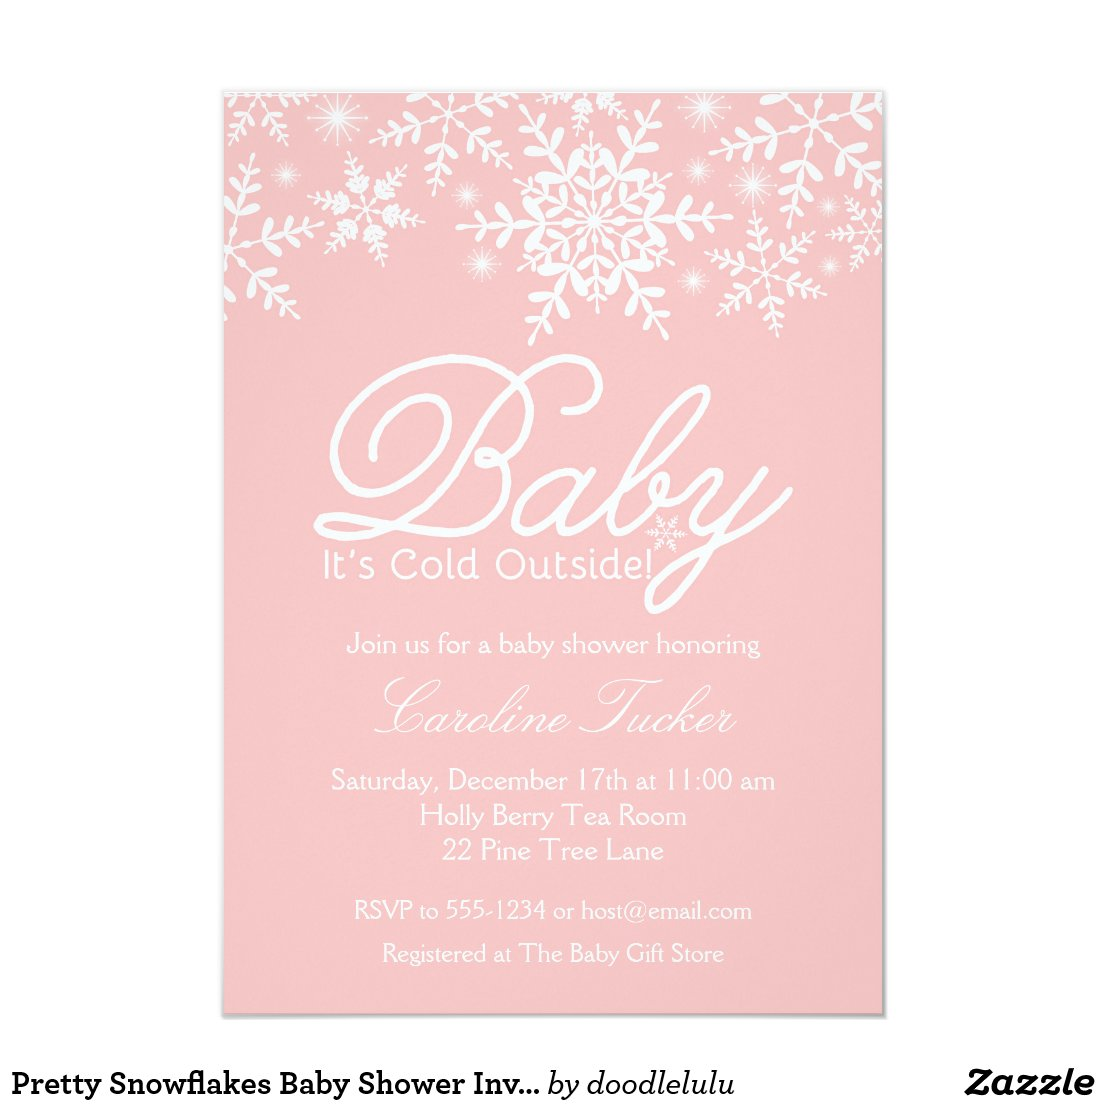 Pretty Snowflakes Baby Shower Invitation